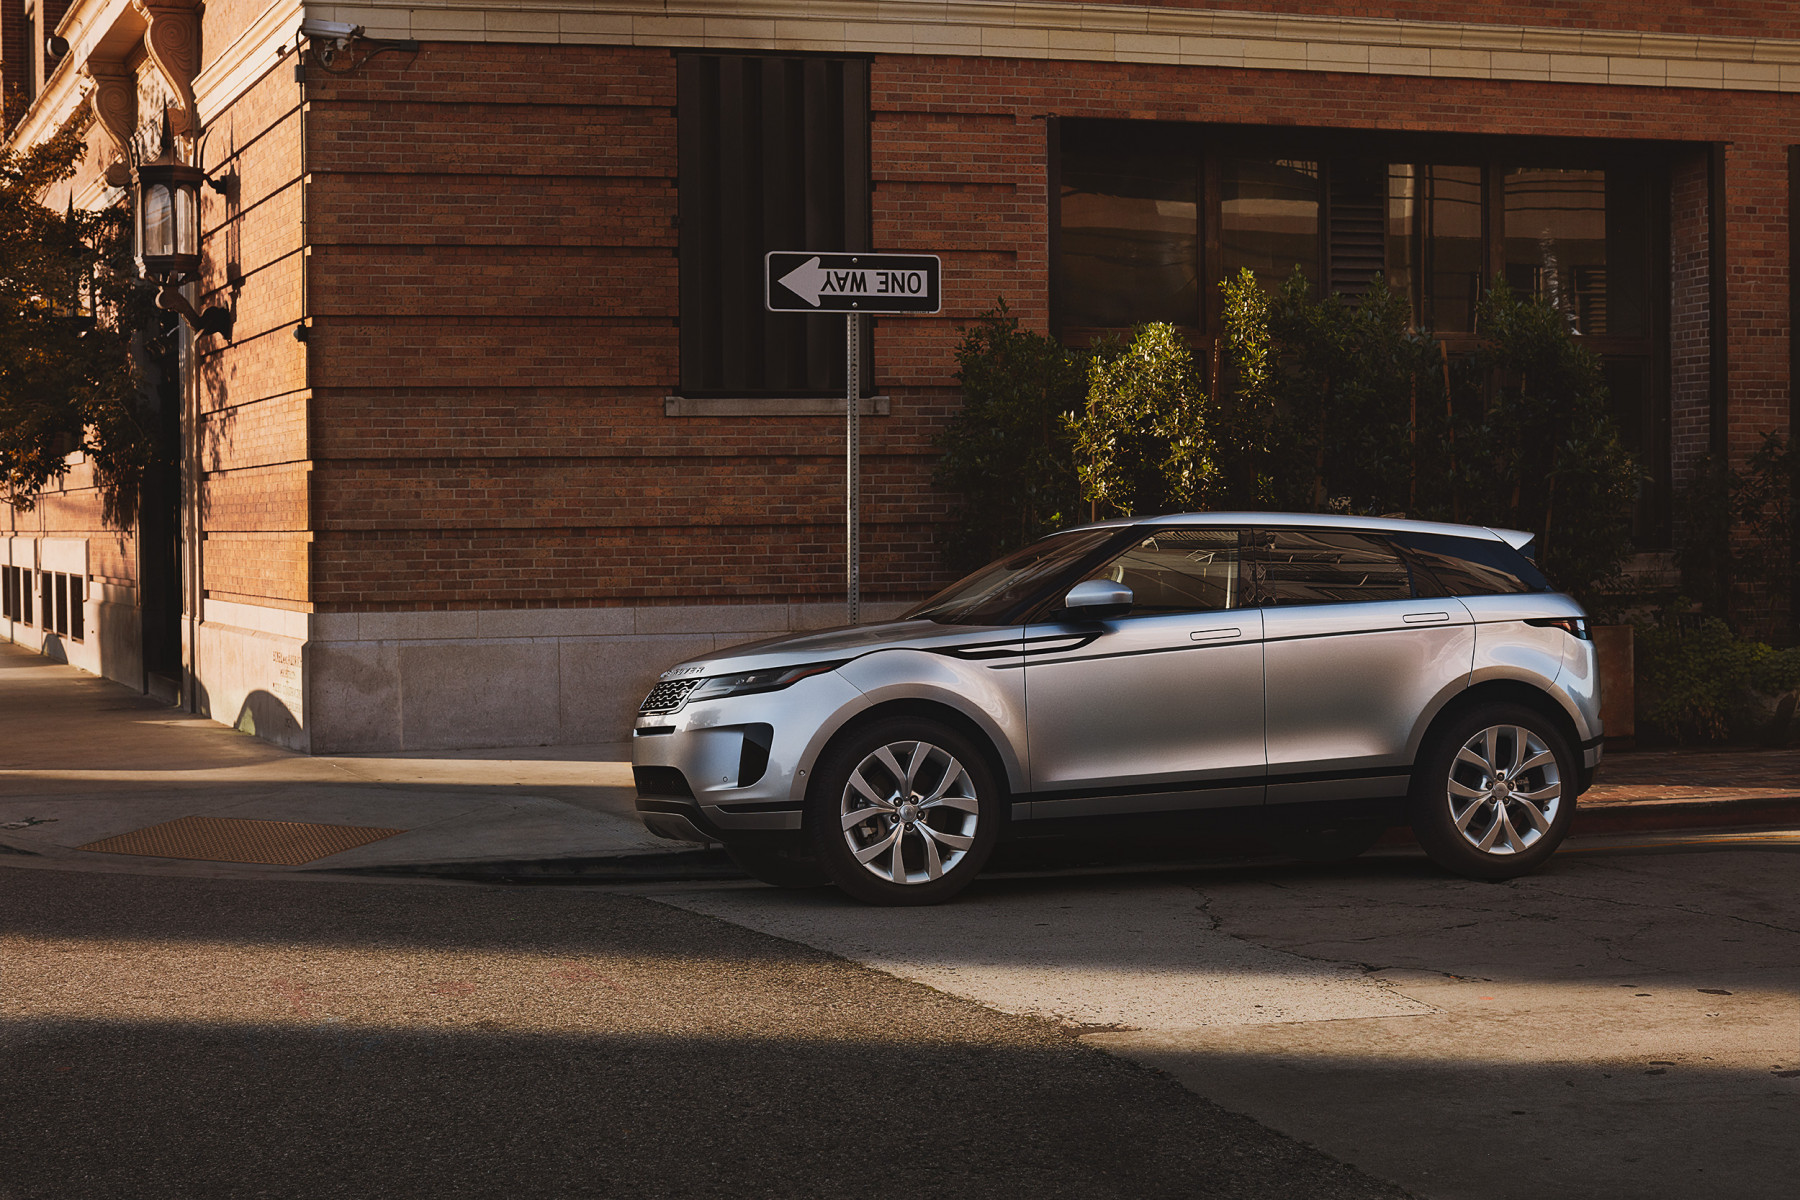 Range Rover Evoque in Los Angeles 3